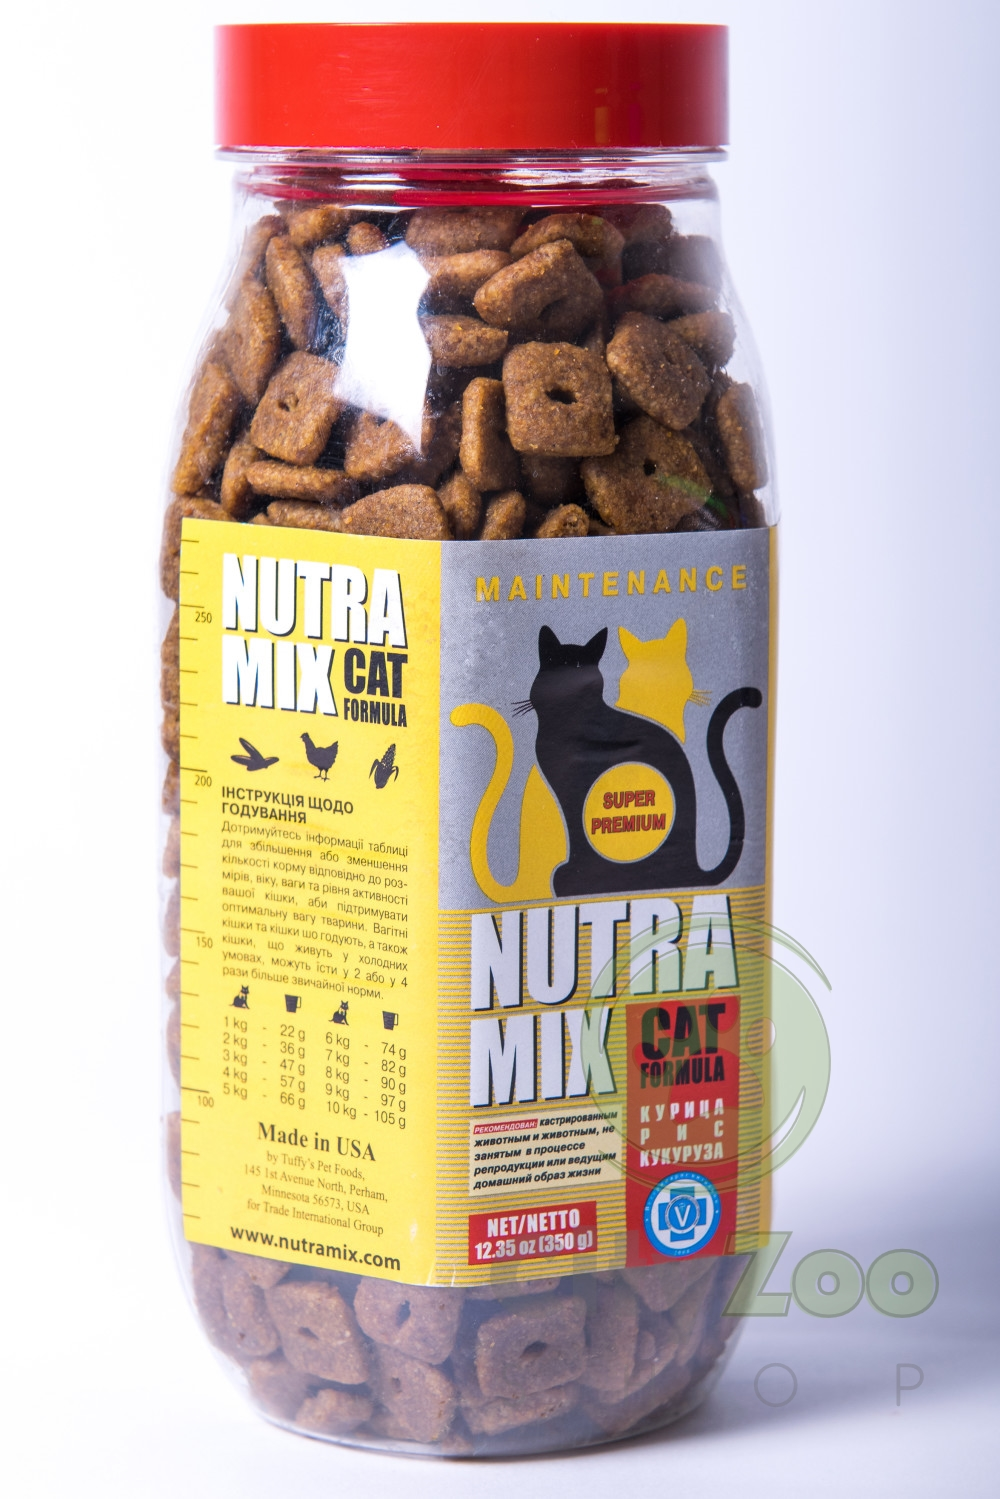 zoo/Nutra_Mix_Cat_Maintenance_banka